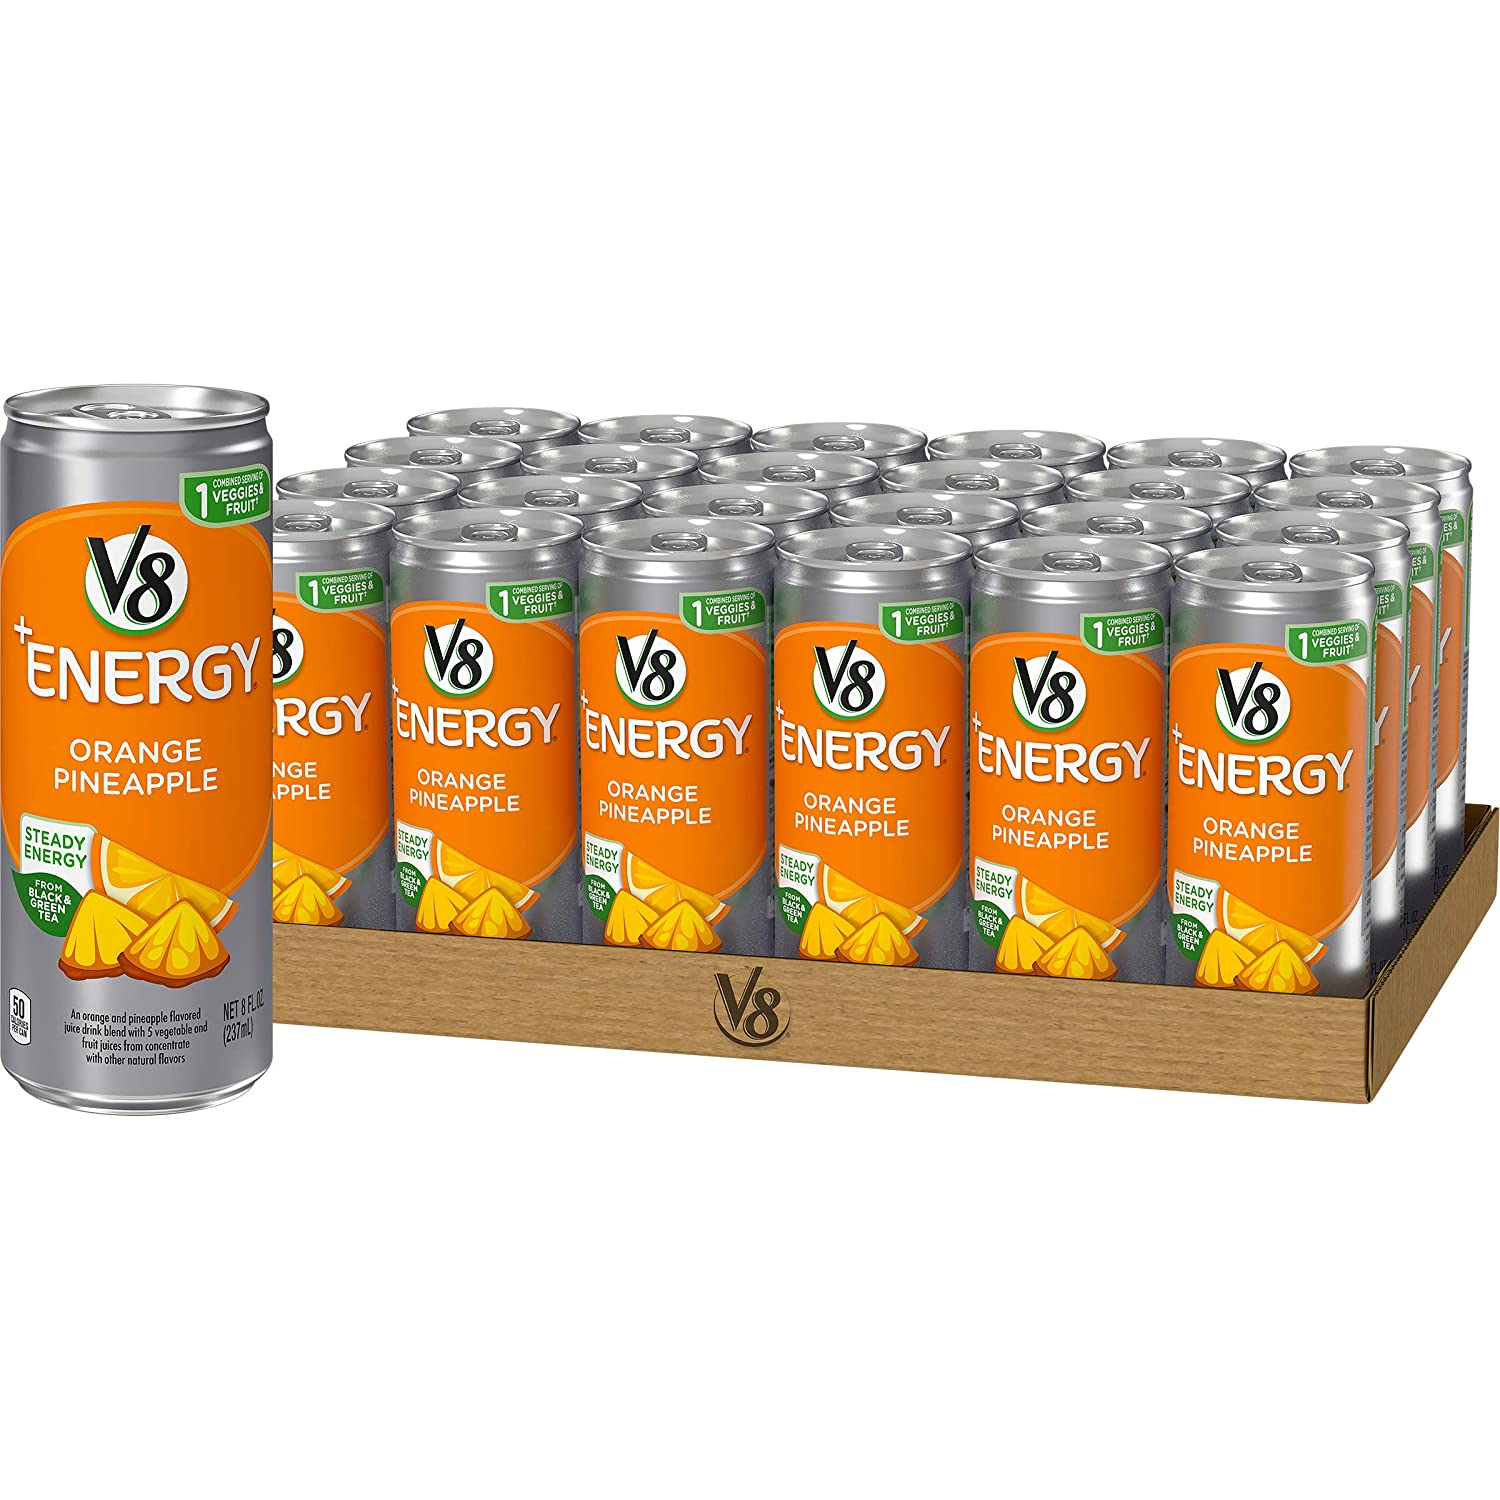 V8 +Energy, Healthy Energy Drink, Natural Energy from Tea, Orange Pineapple, 8 Fl Oz Can, 24 Count (Pack of 1)